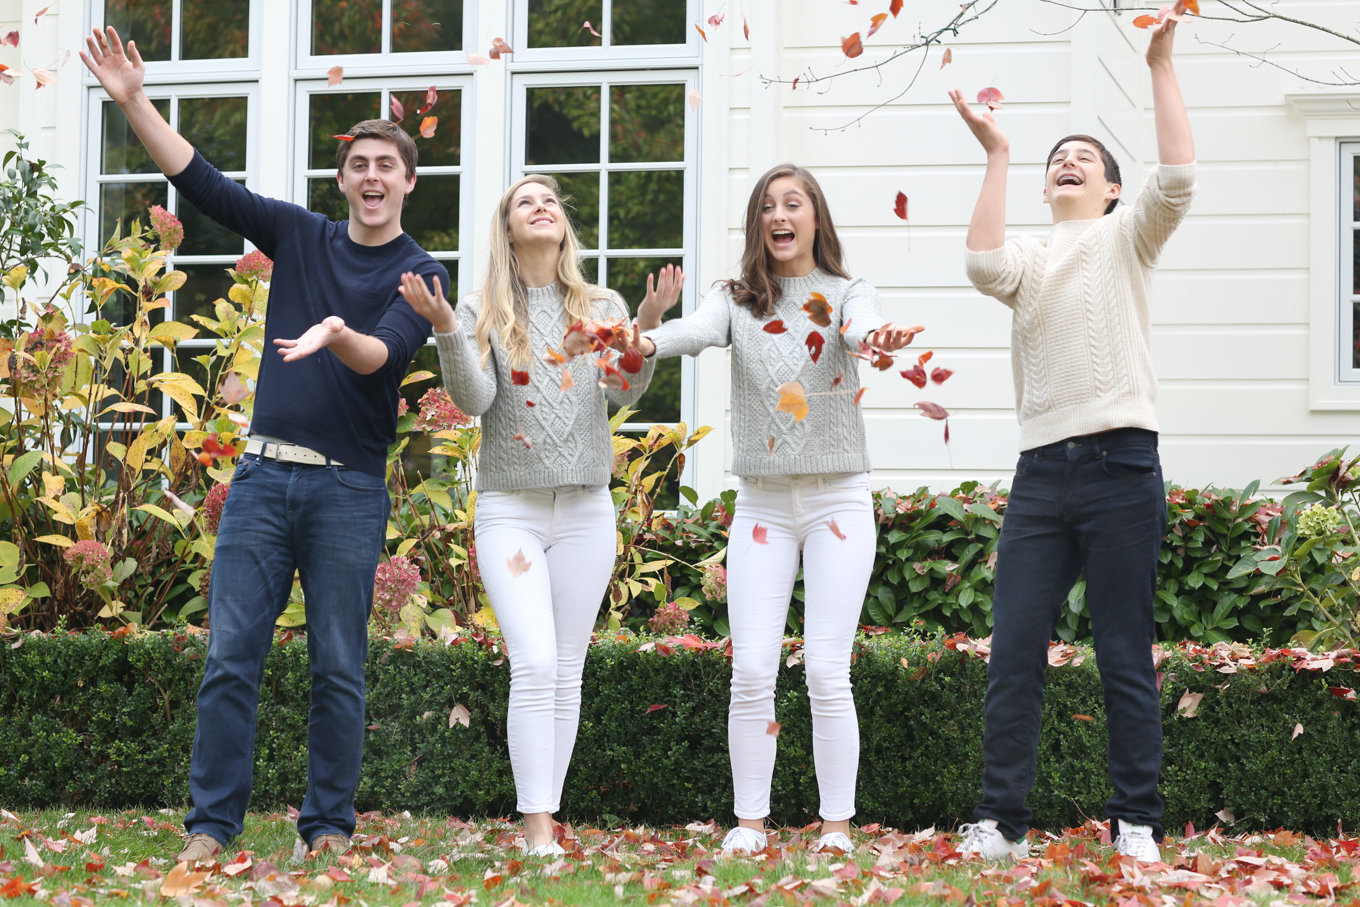 Family photos outdoor fall leaves